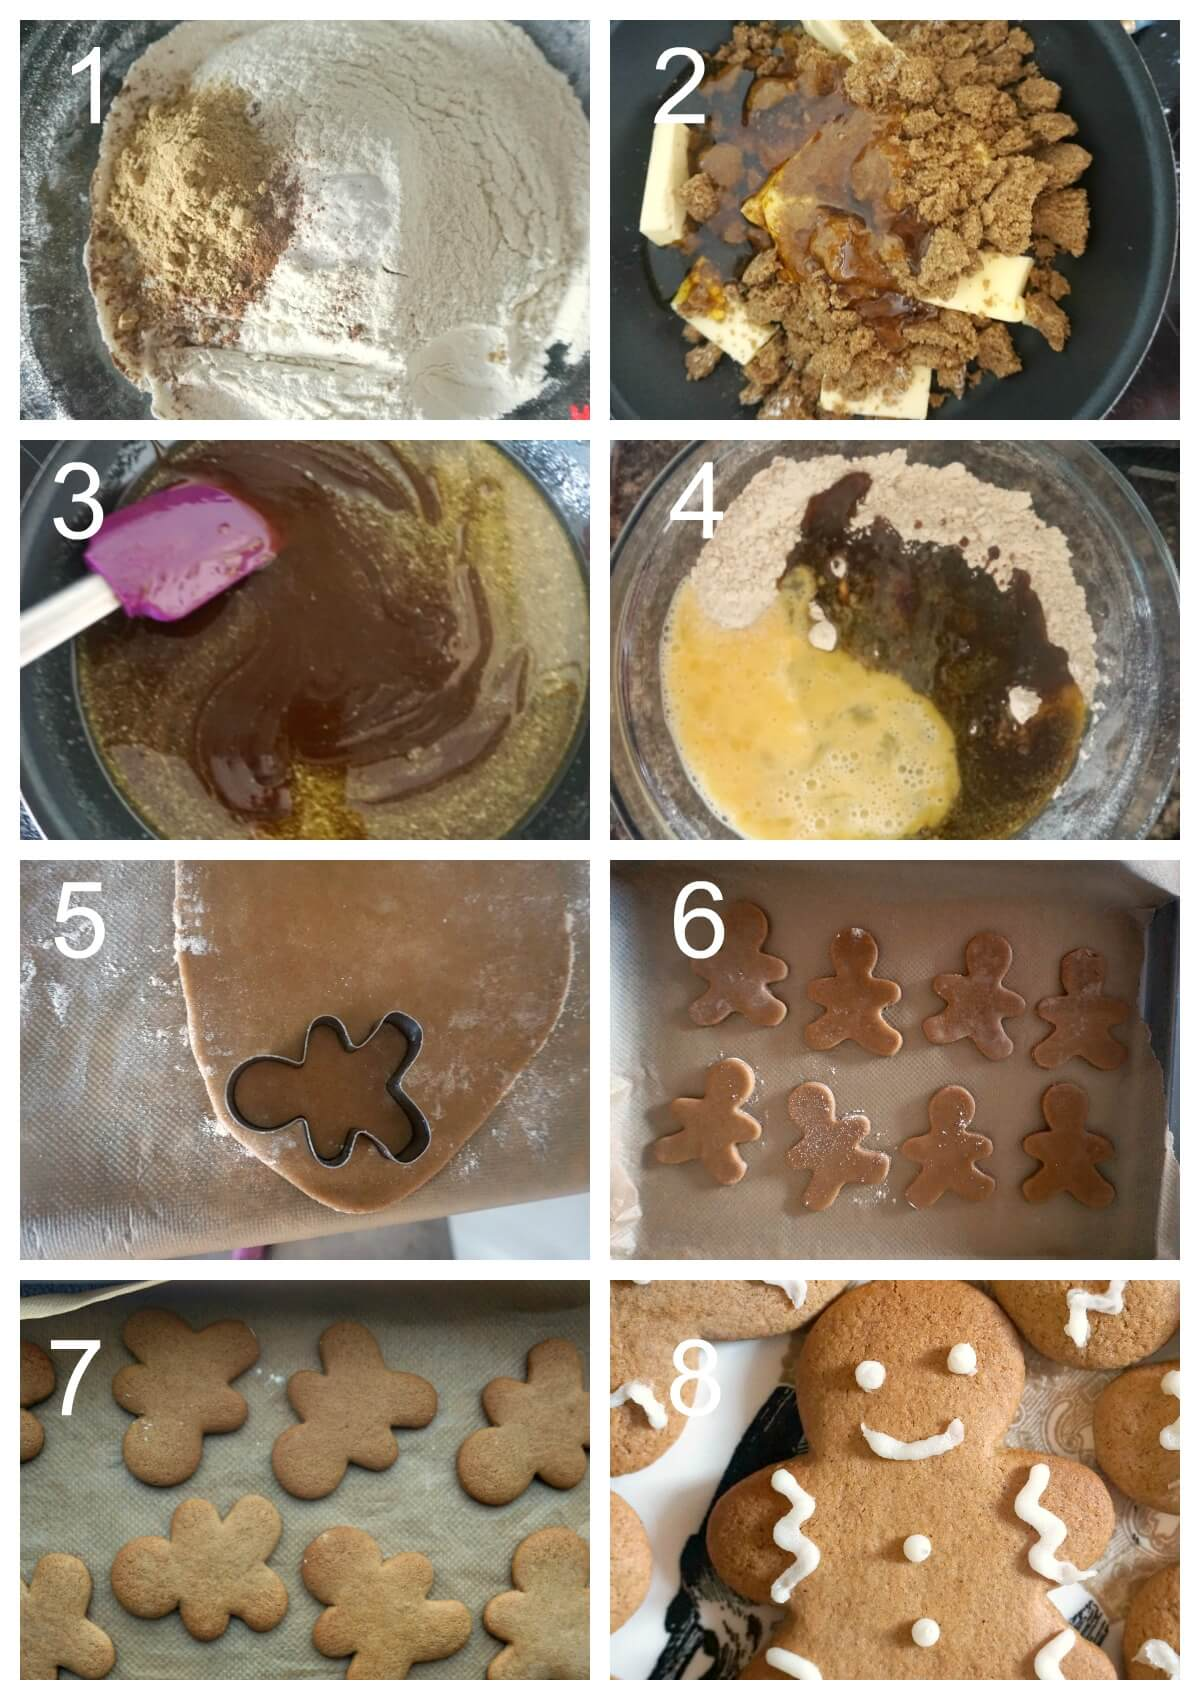 Collage of 8 photos to show how to make gingerbread men